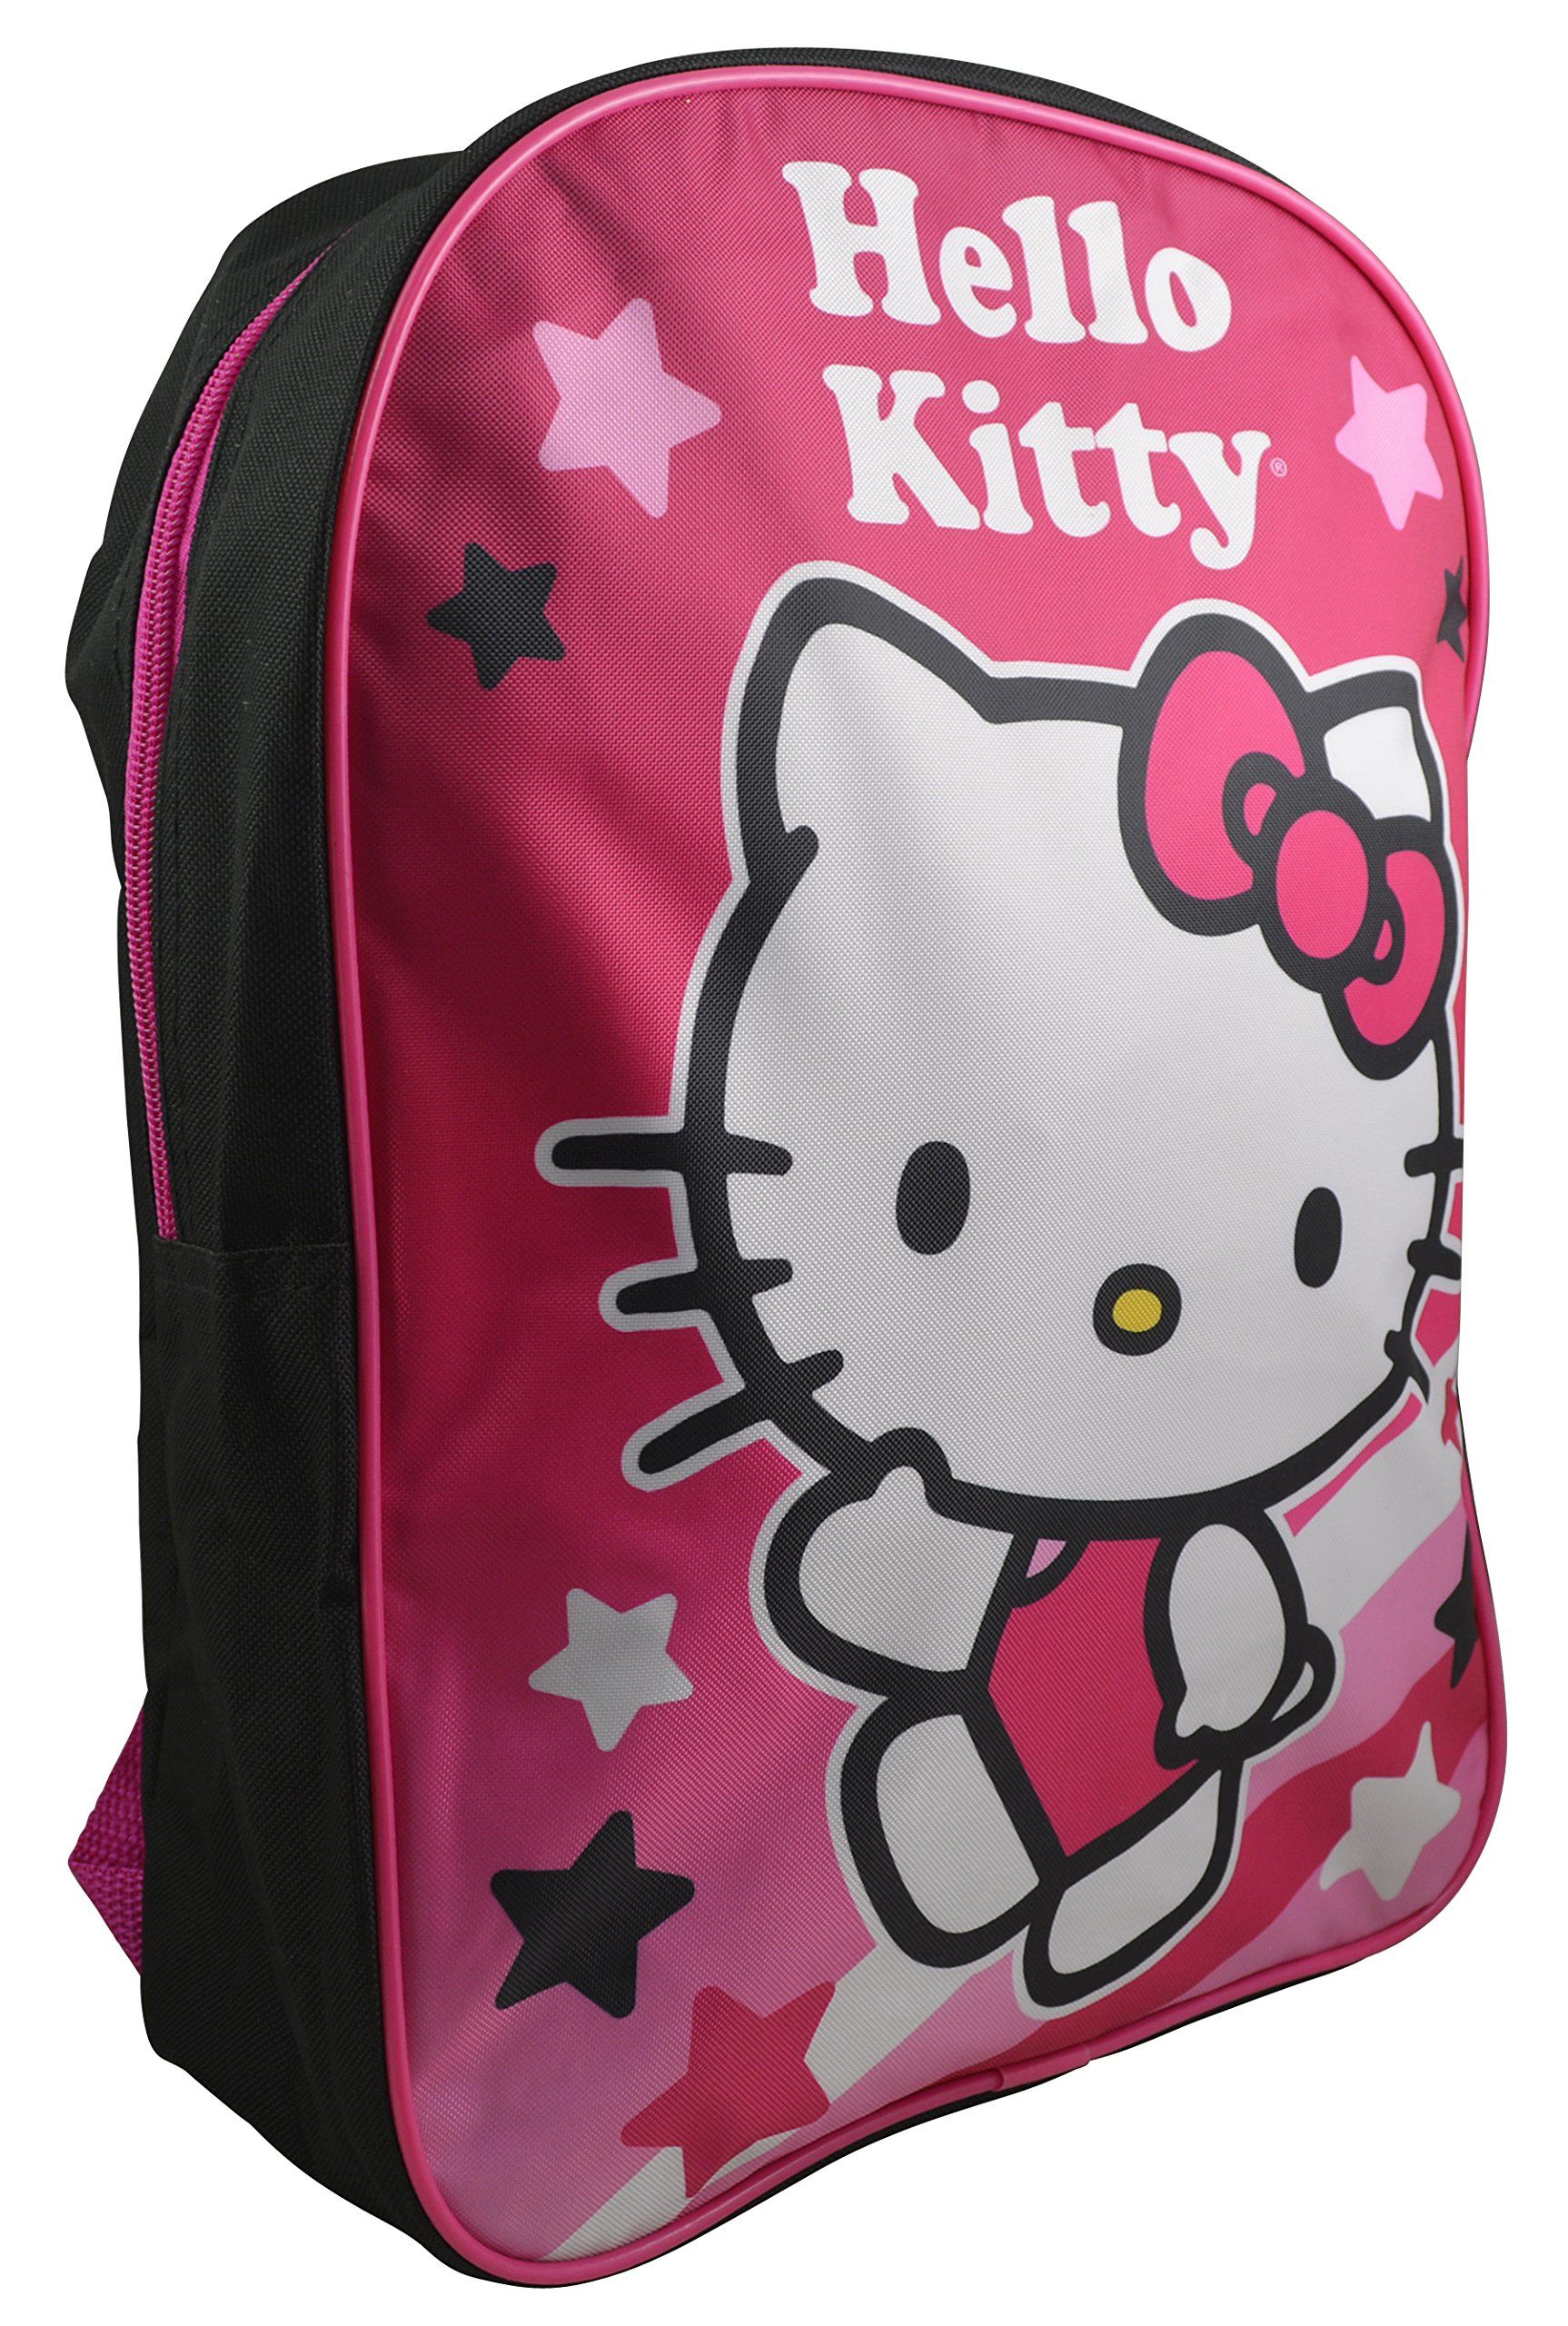 1e7de213bec2 Sanrio Hello Kitty Girls 15 School Bag Backpack Travel Bag w  Bonus  Coloring Book     To view further for this item